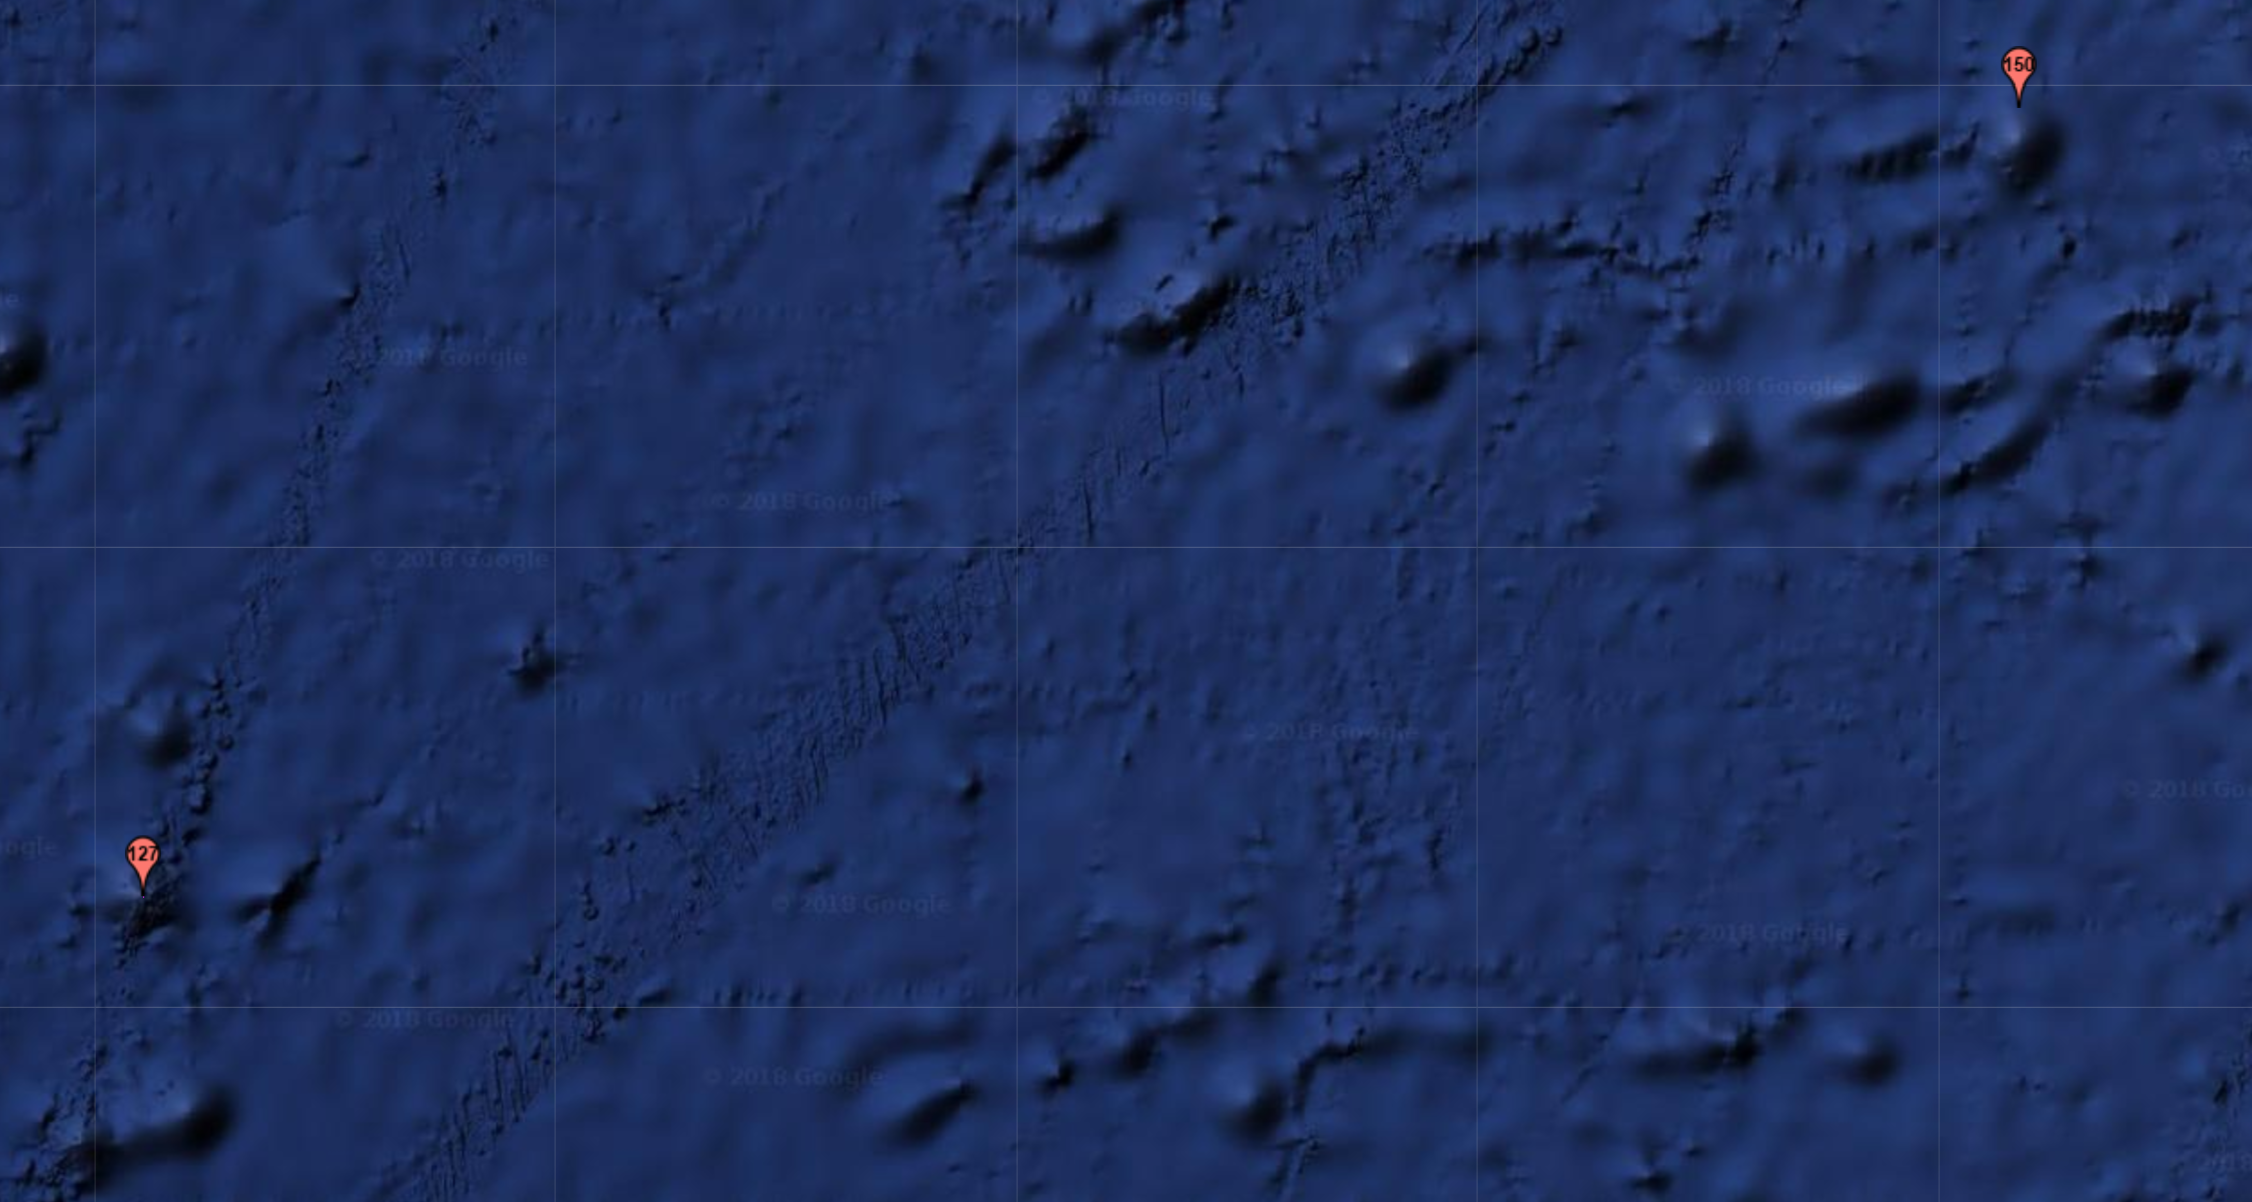 Image 2. Our next target: a chain of seamounts.